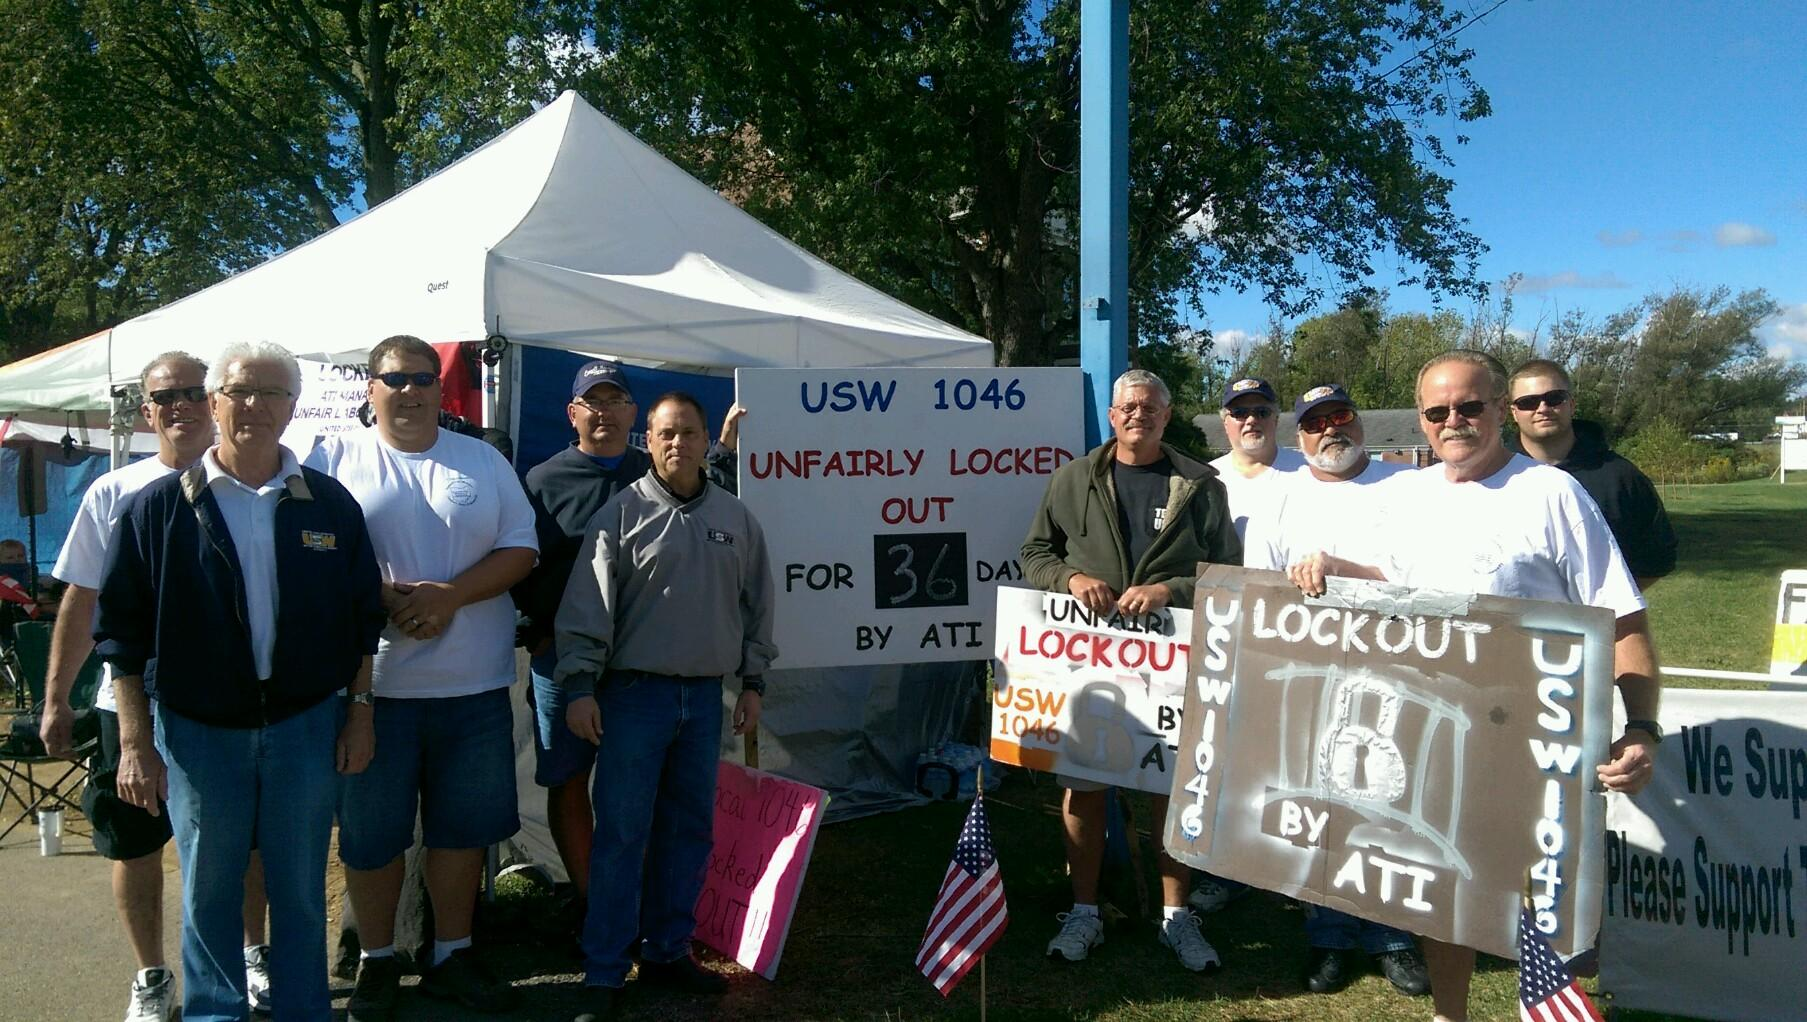 With Help From Sen. Sherrod Brown, Illegally Locked-Out USW Workers Get Contract